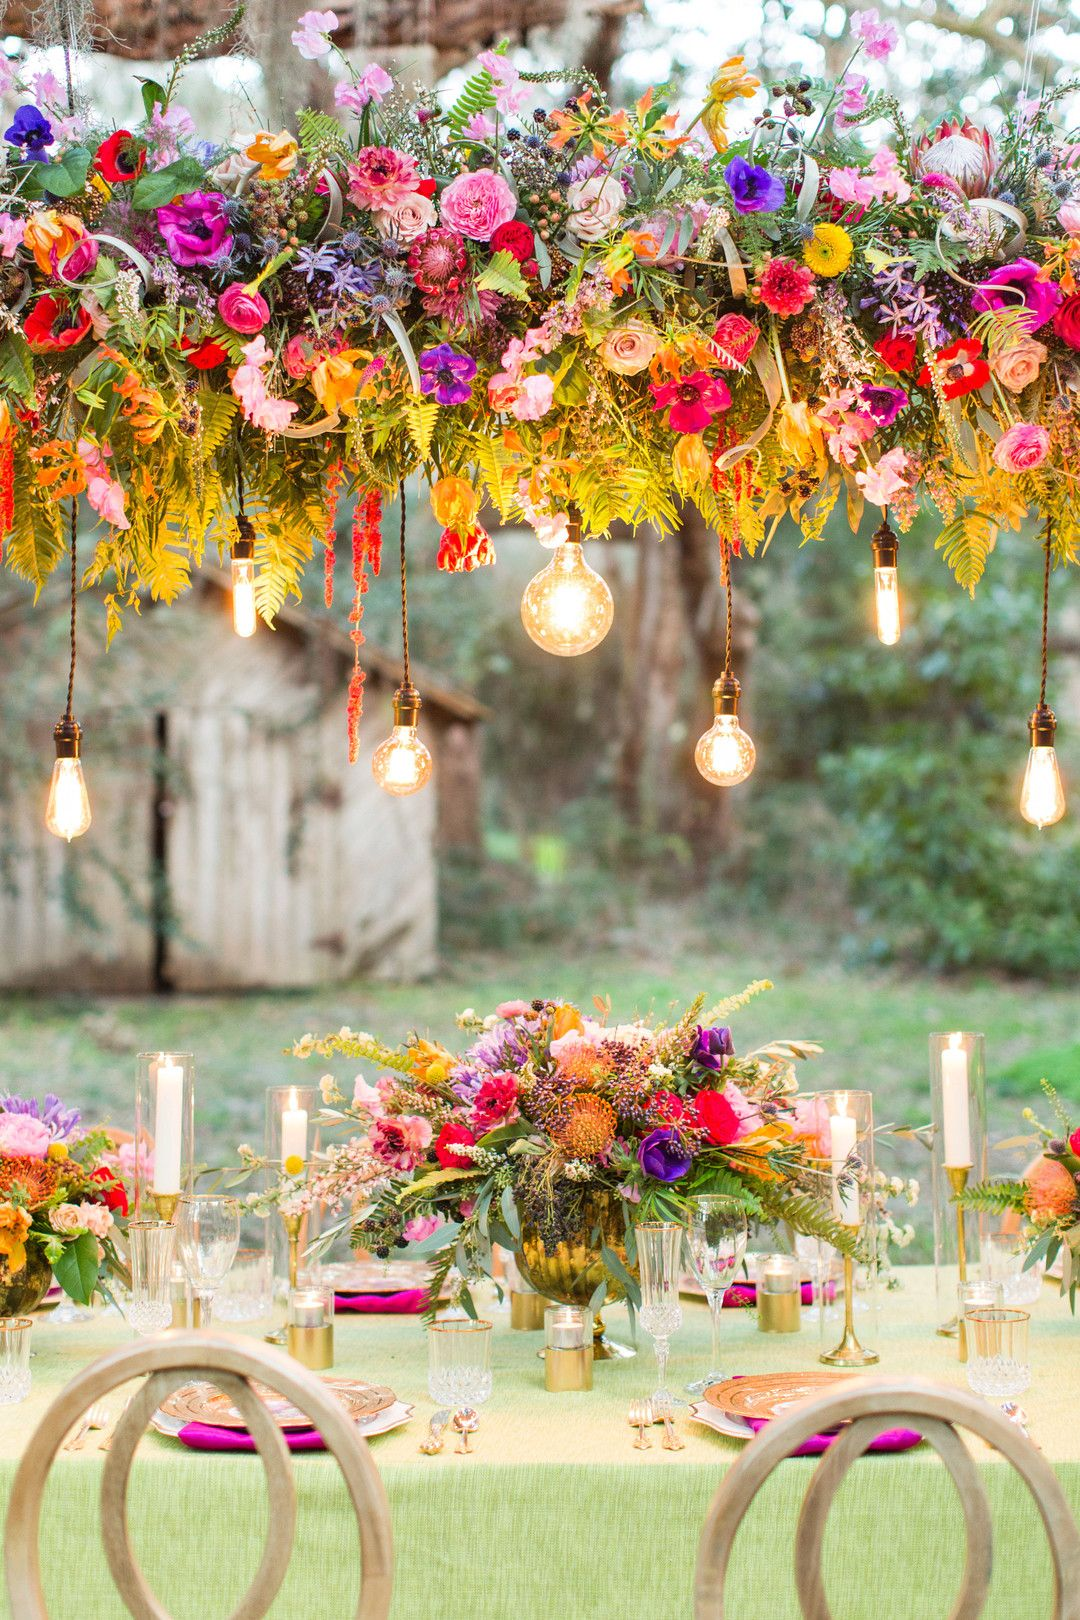 MYRTLE BEACH WEDDINGS - Vibrant Sunnyside Plantation wedding inspiration with floral chandelier and spanish moss